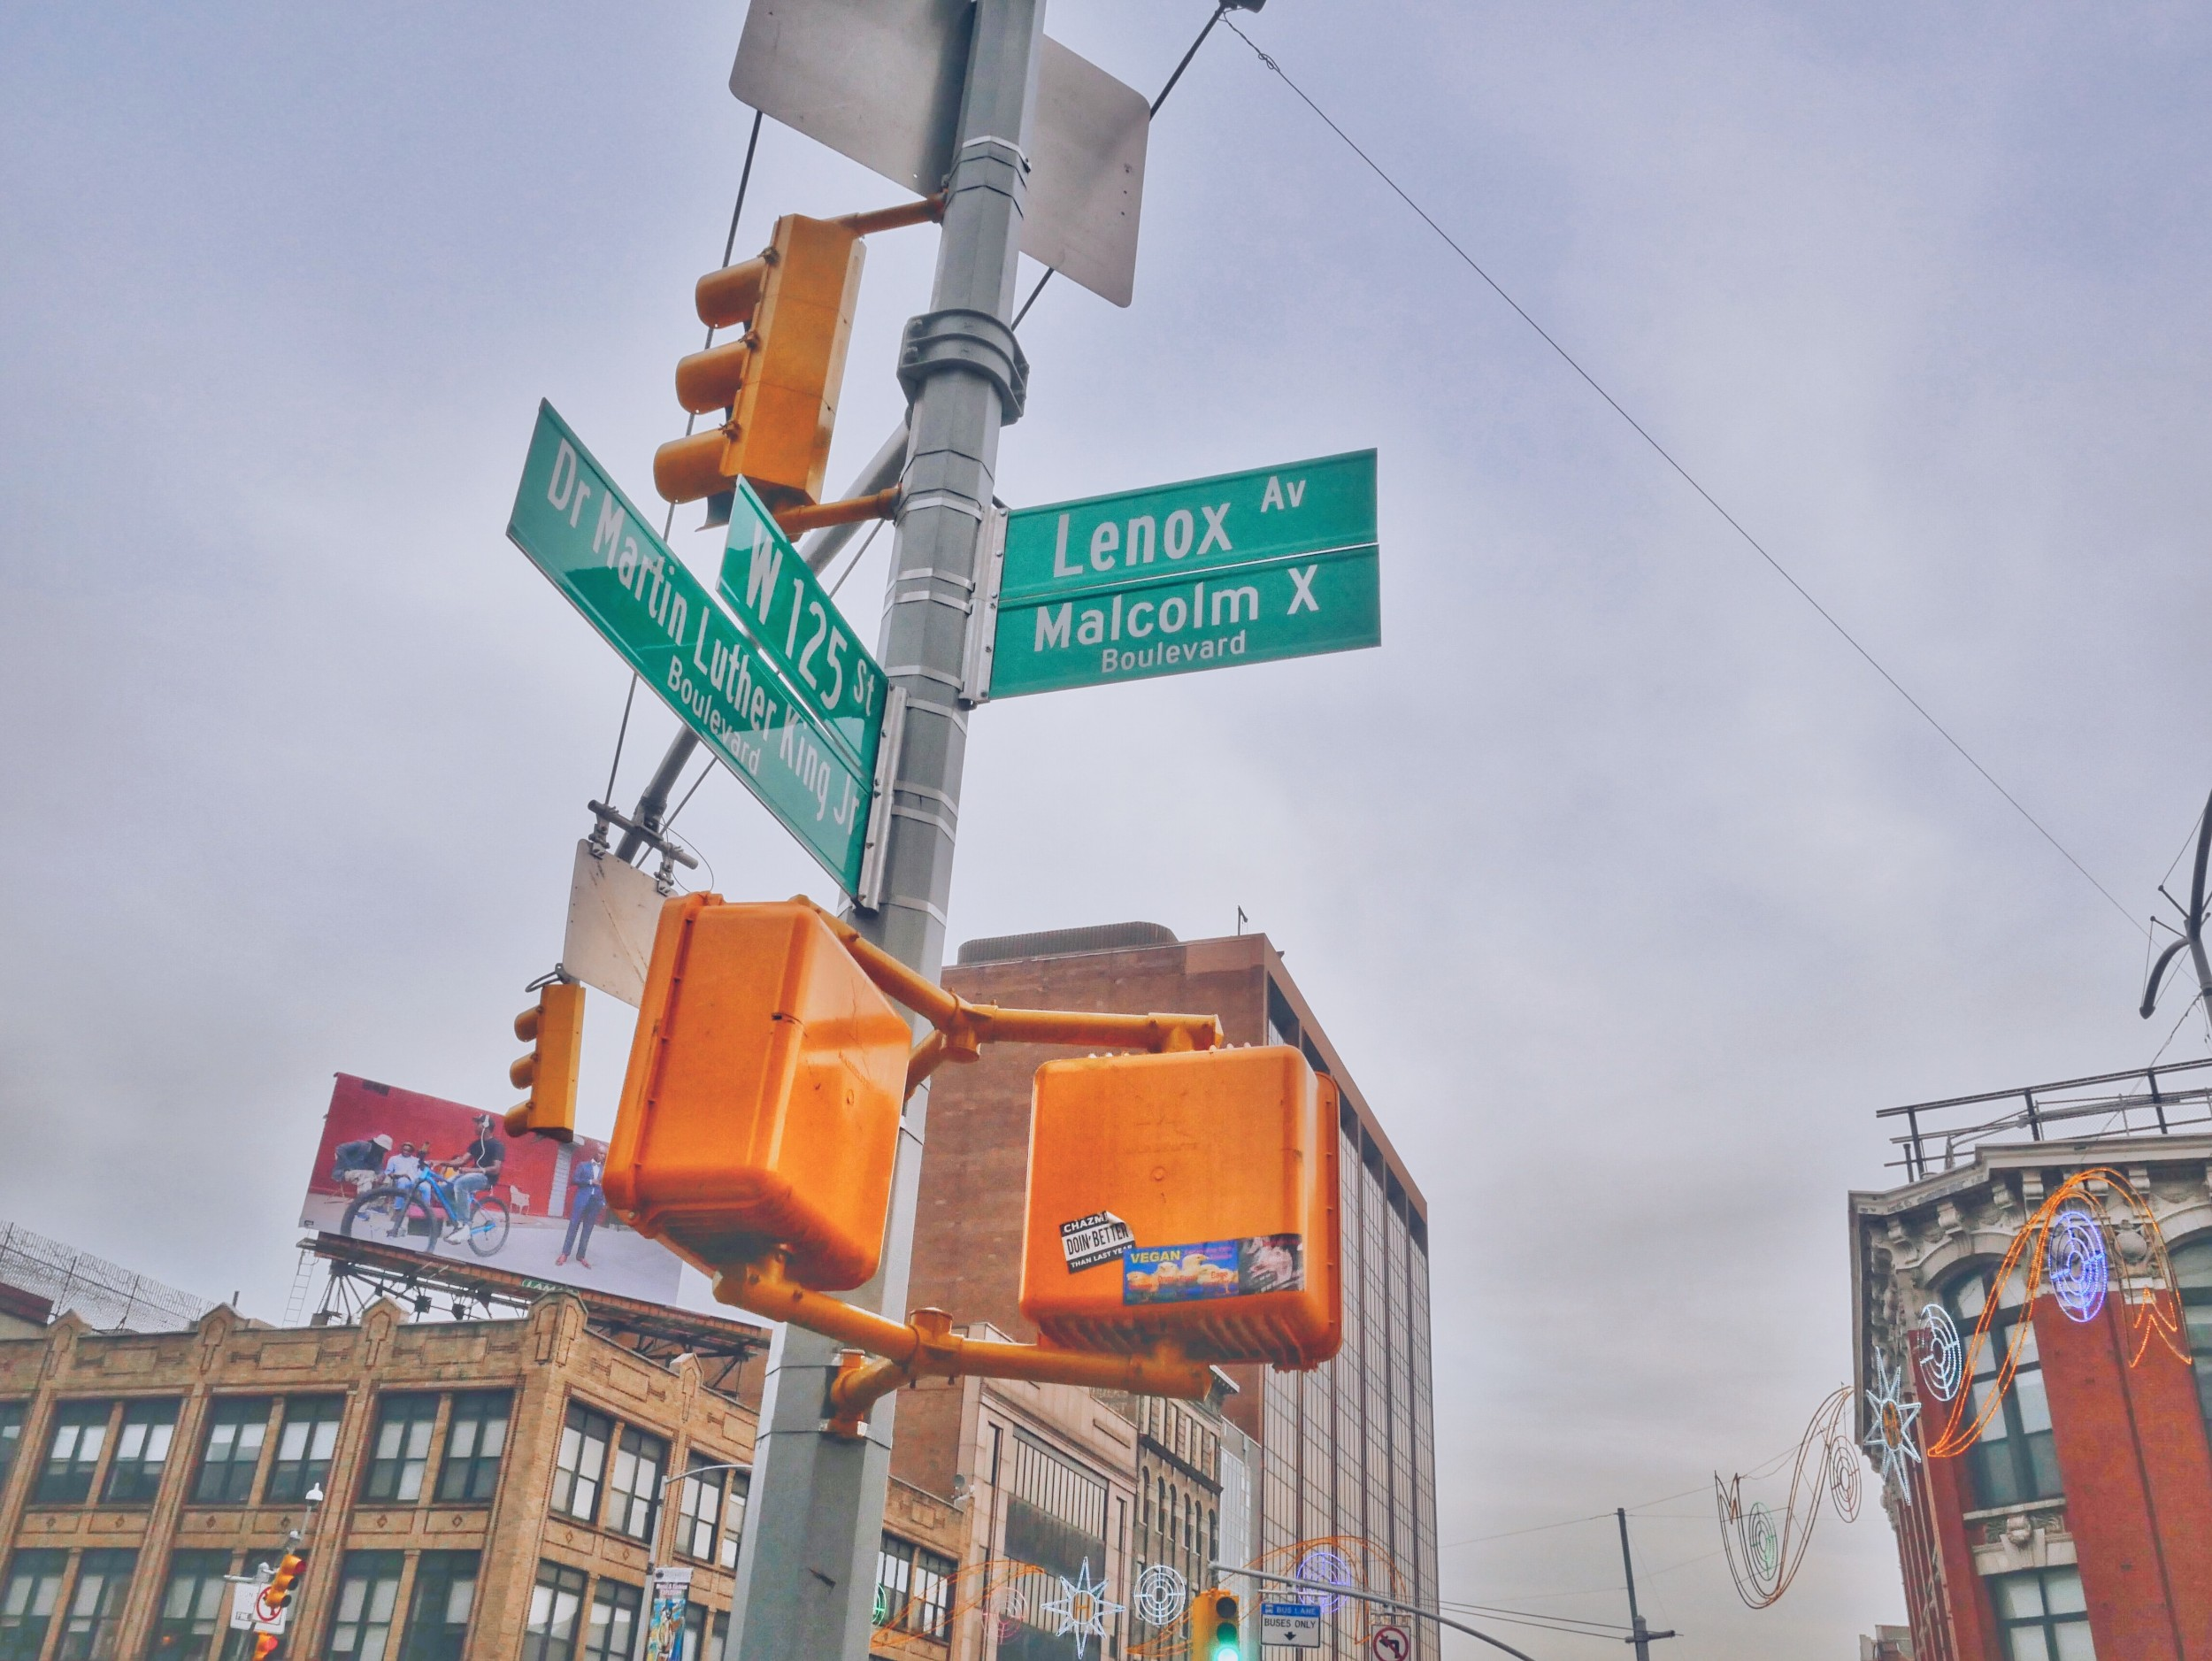 The Corner of 125th Street and Malcolm X Blvd in Harlem